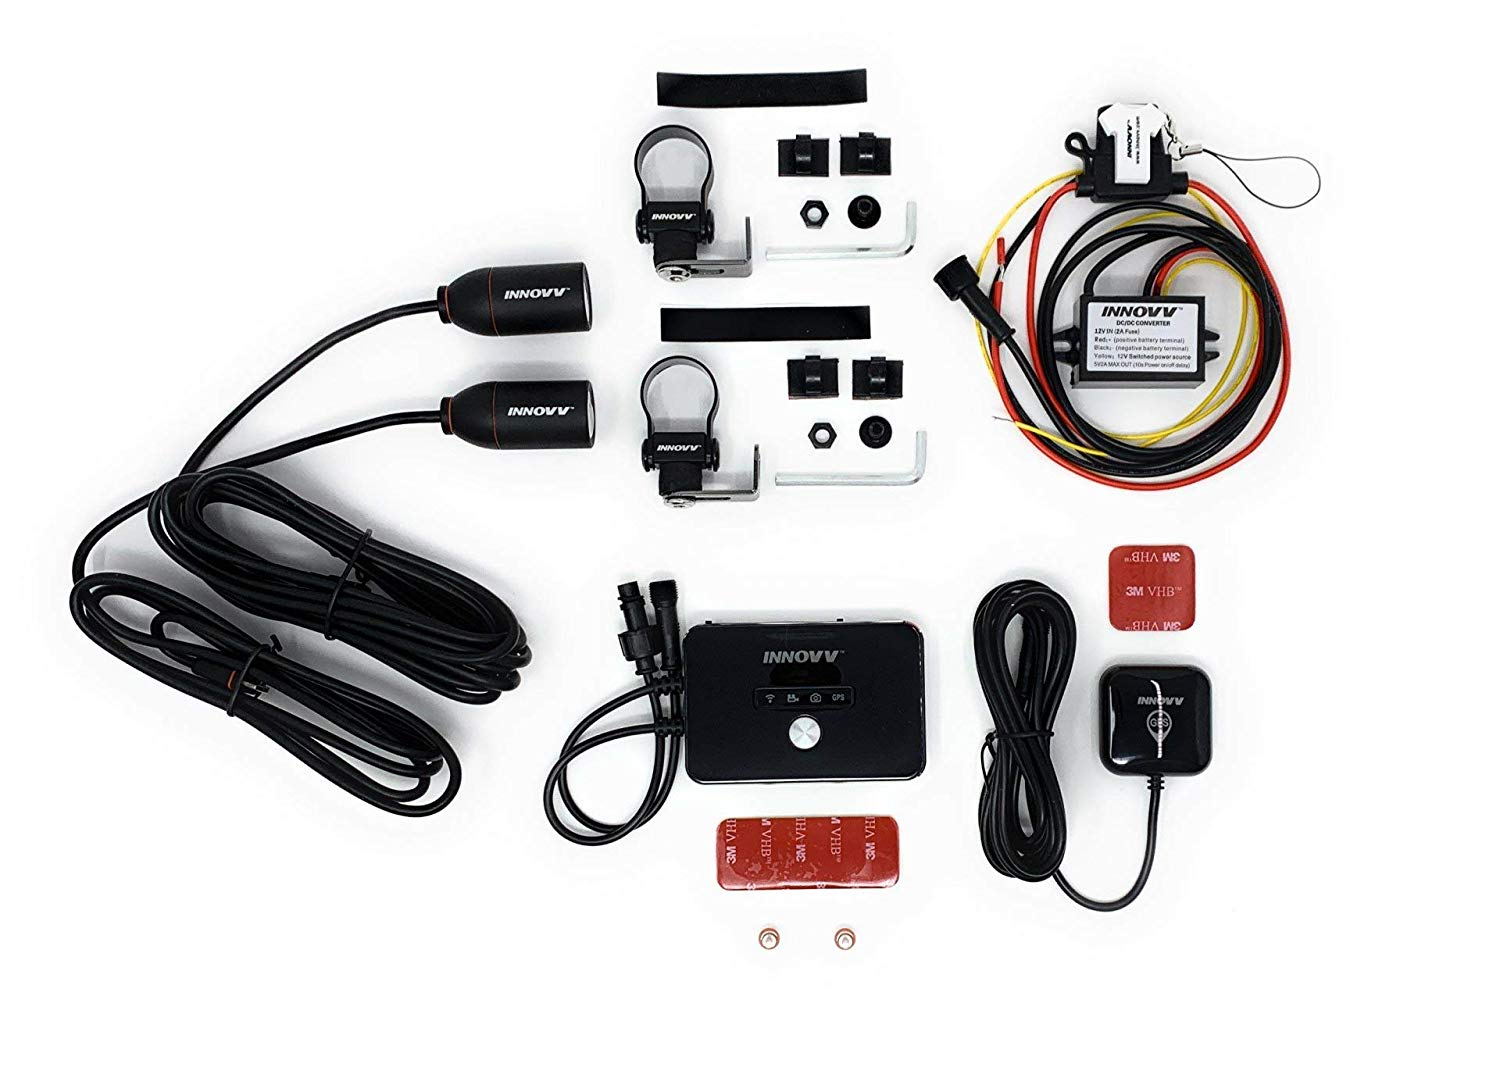 INNOVV K2 motorcycle dash camera package content